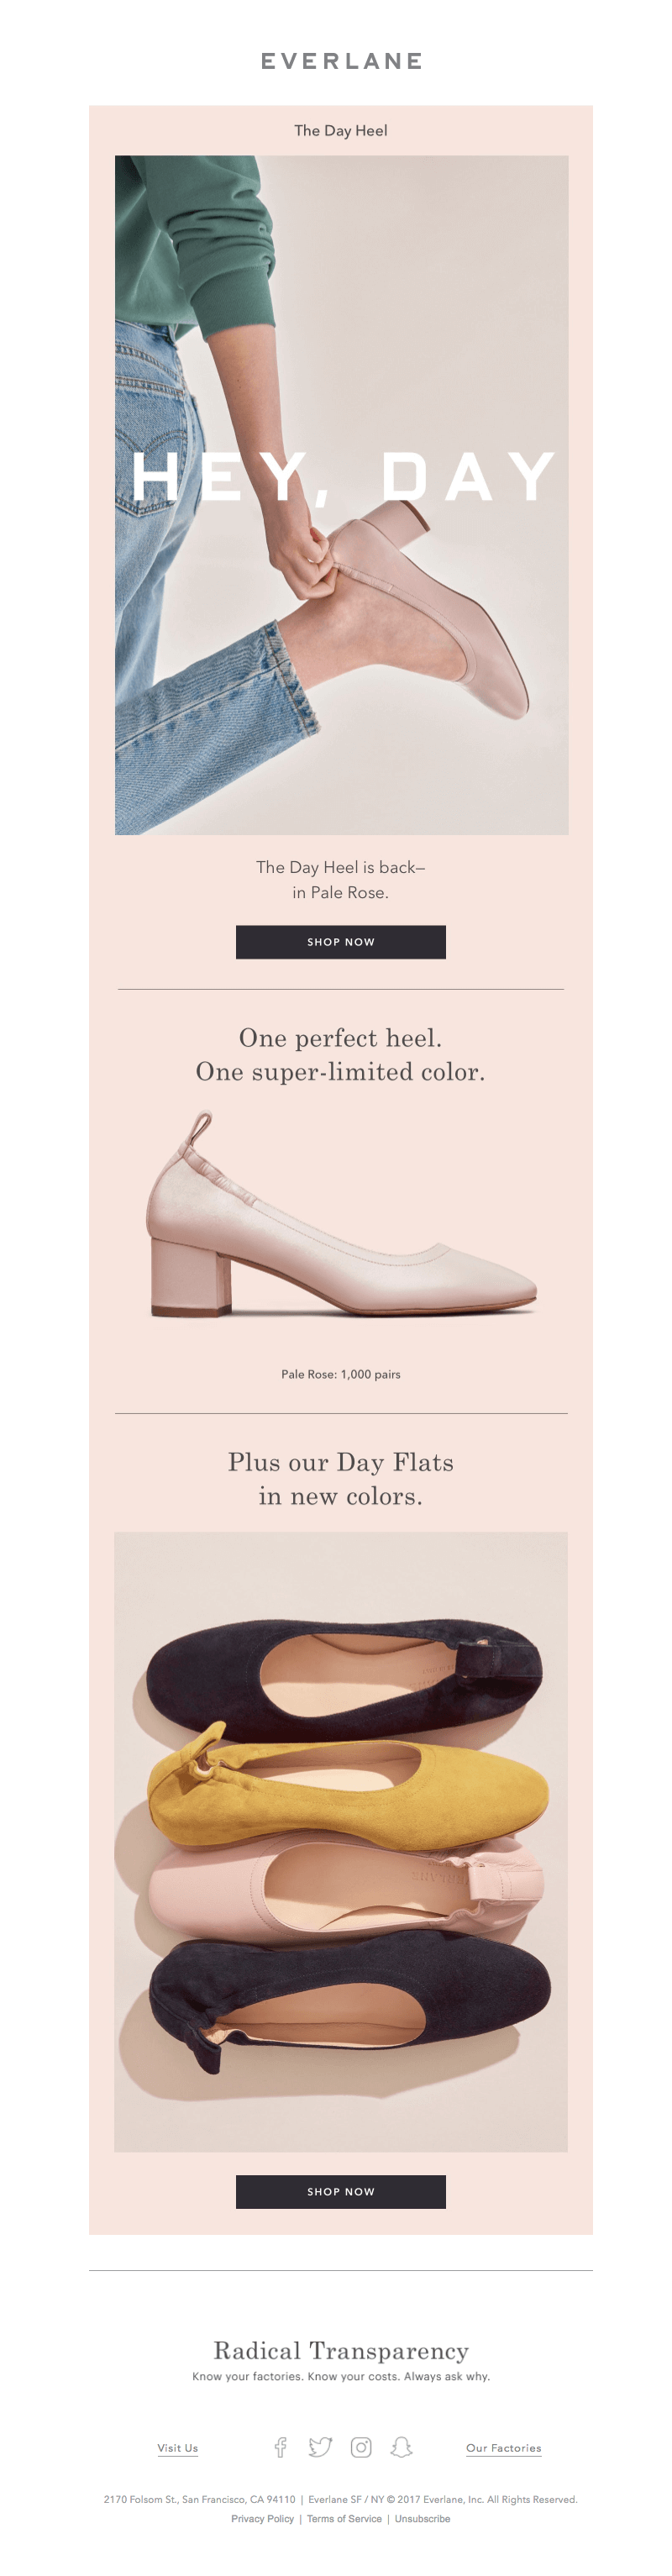 Millennial pink email from Everlane